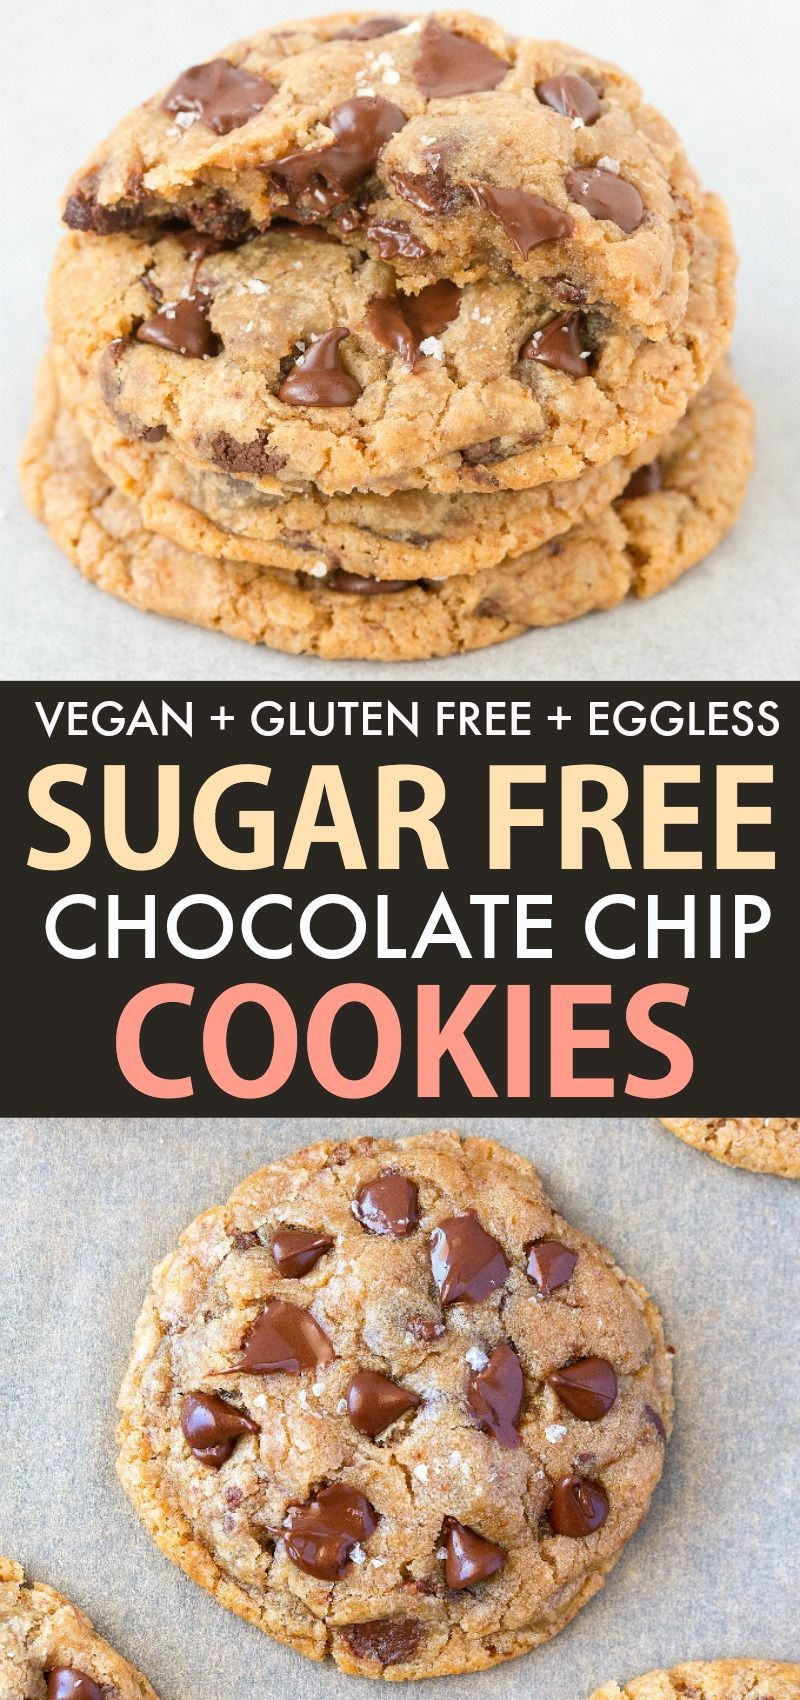 The BEST Vegan and Sugar Free Chocolate Chip Cookie recipe ...